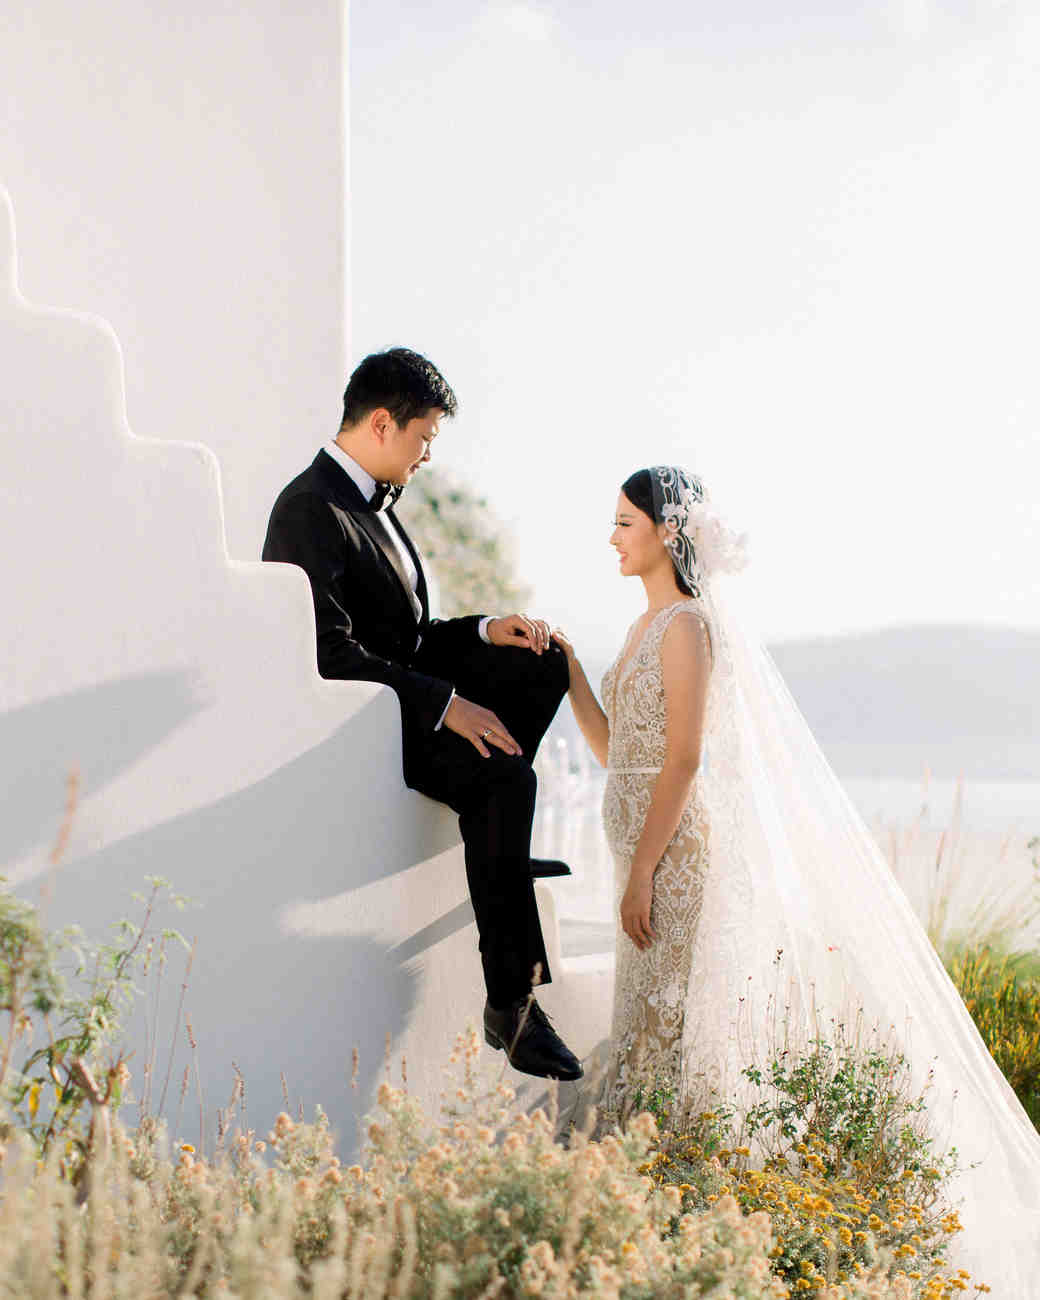 angie prayogo greece wedding couple groom sitting on stairs